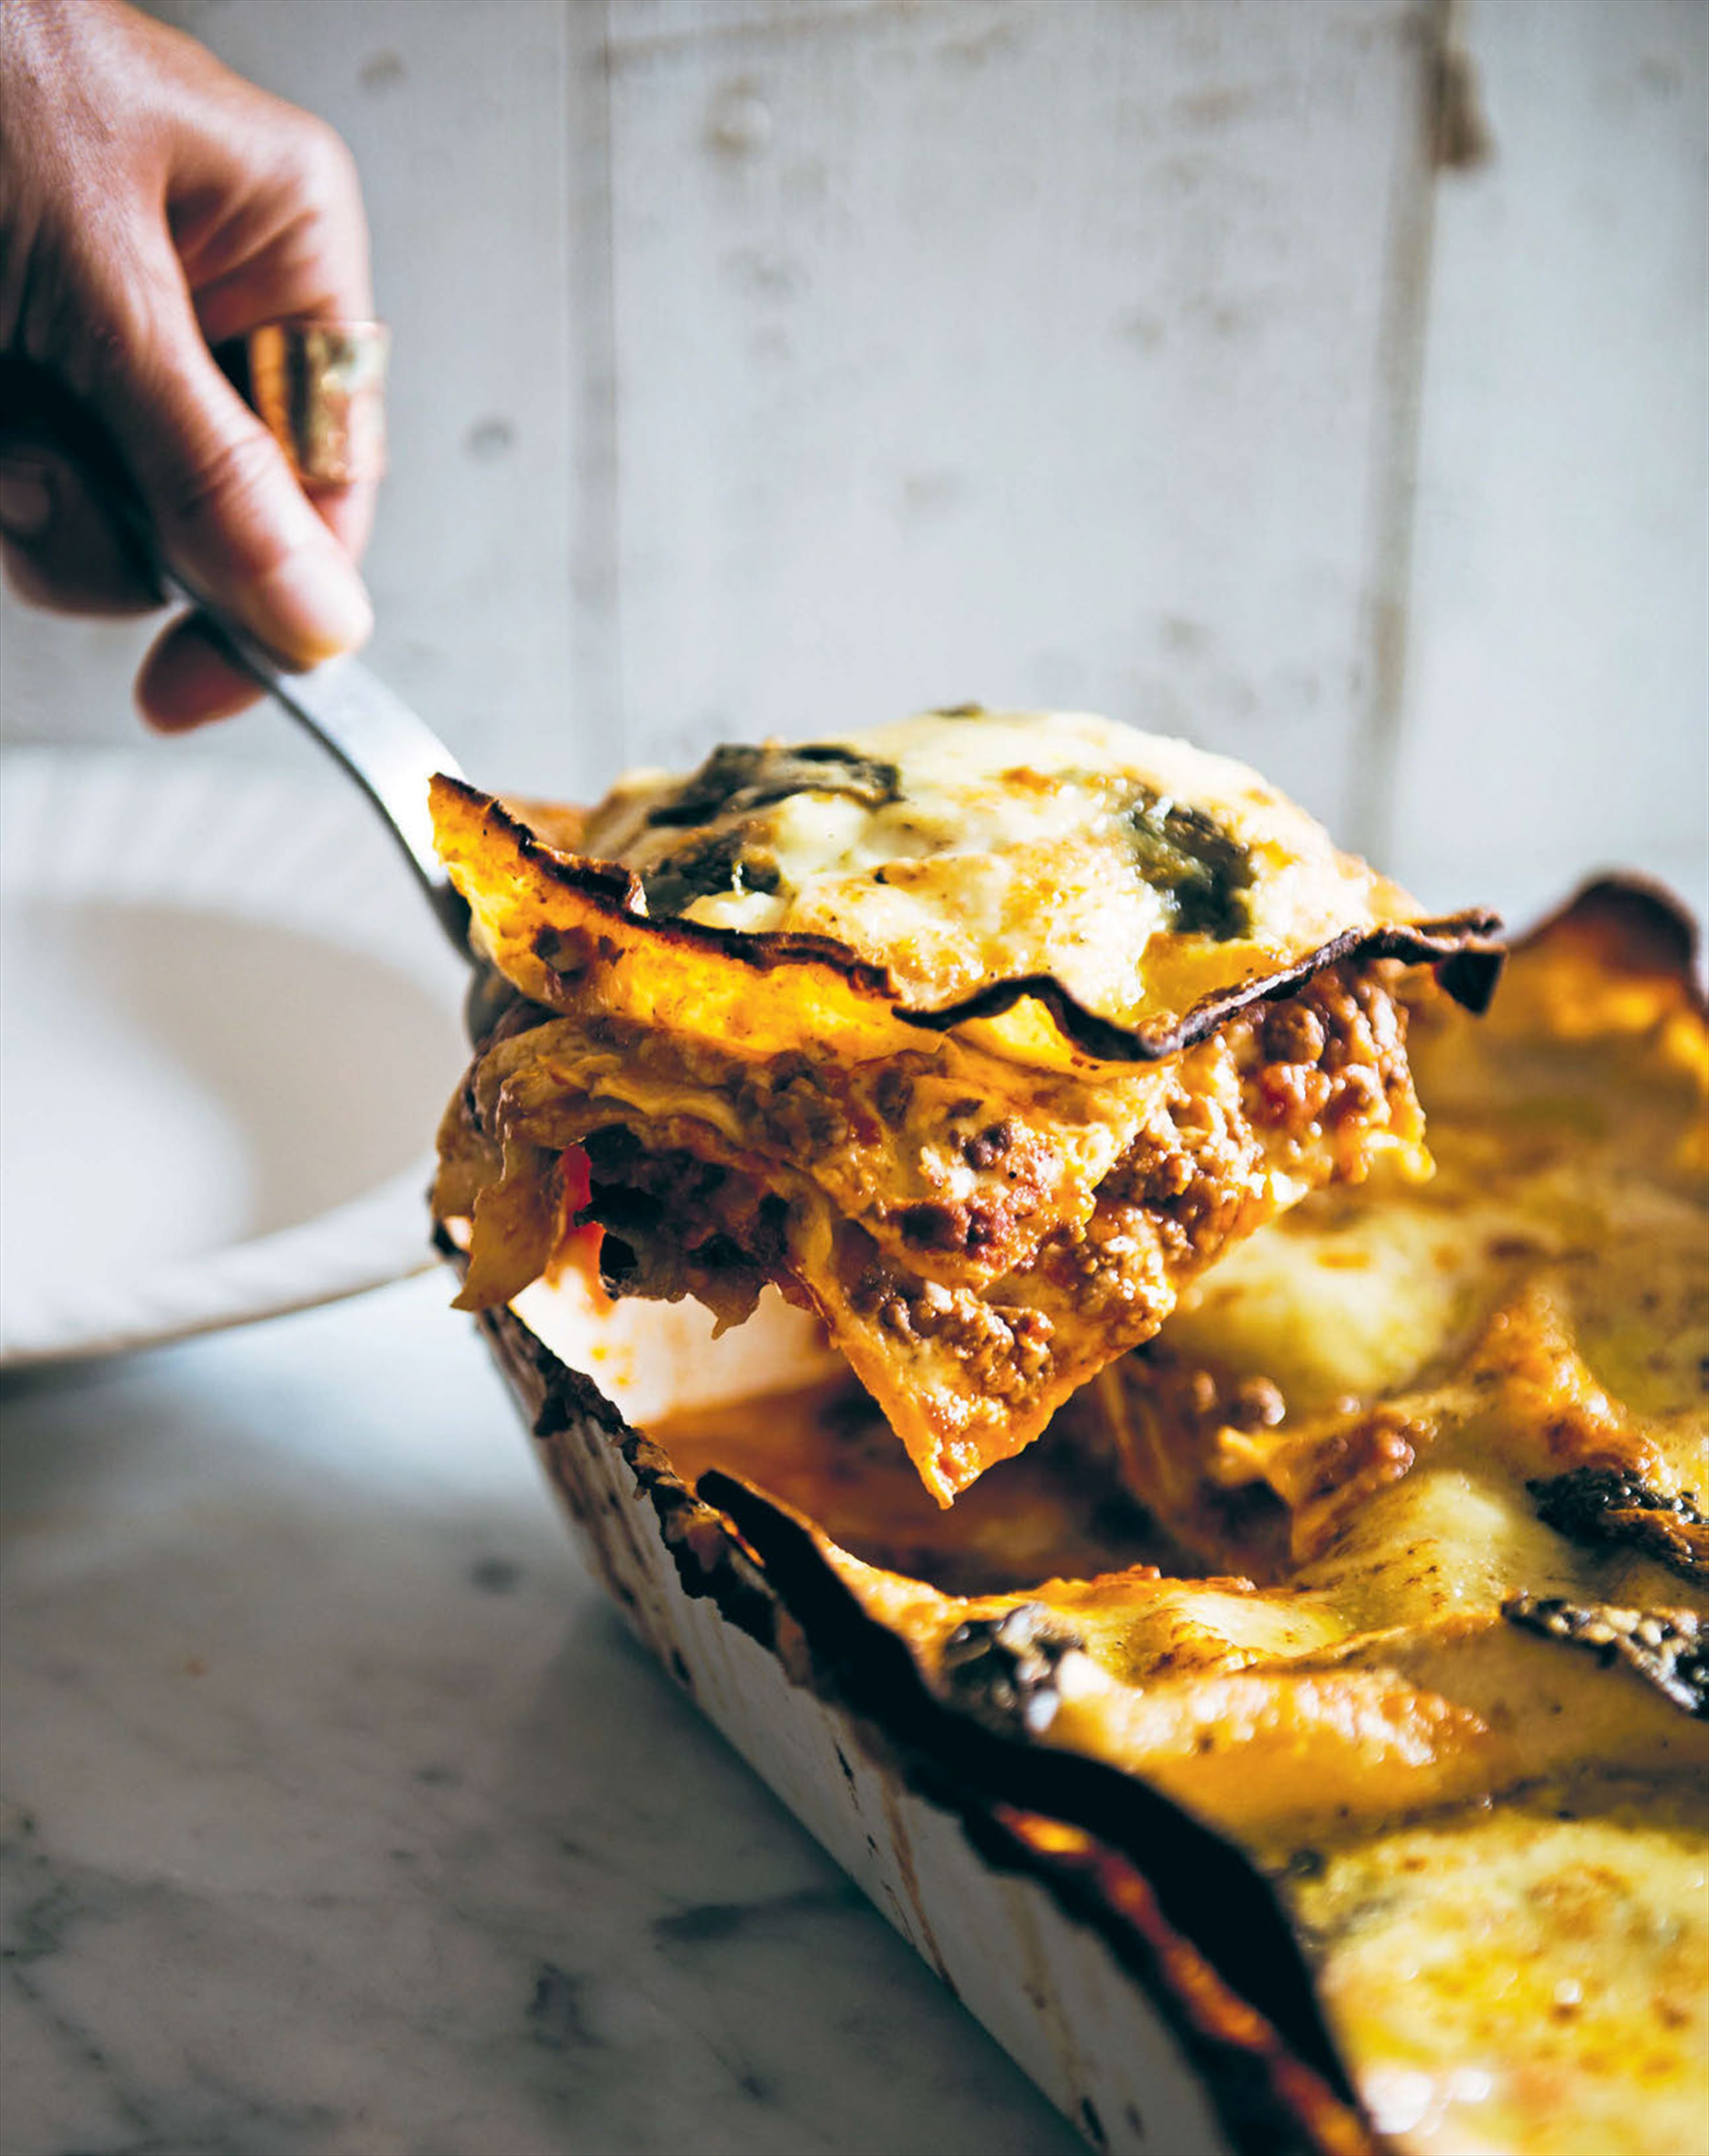 Pork & fennel lasagne